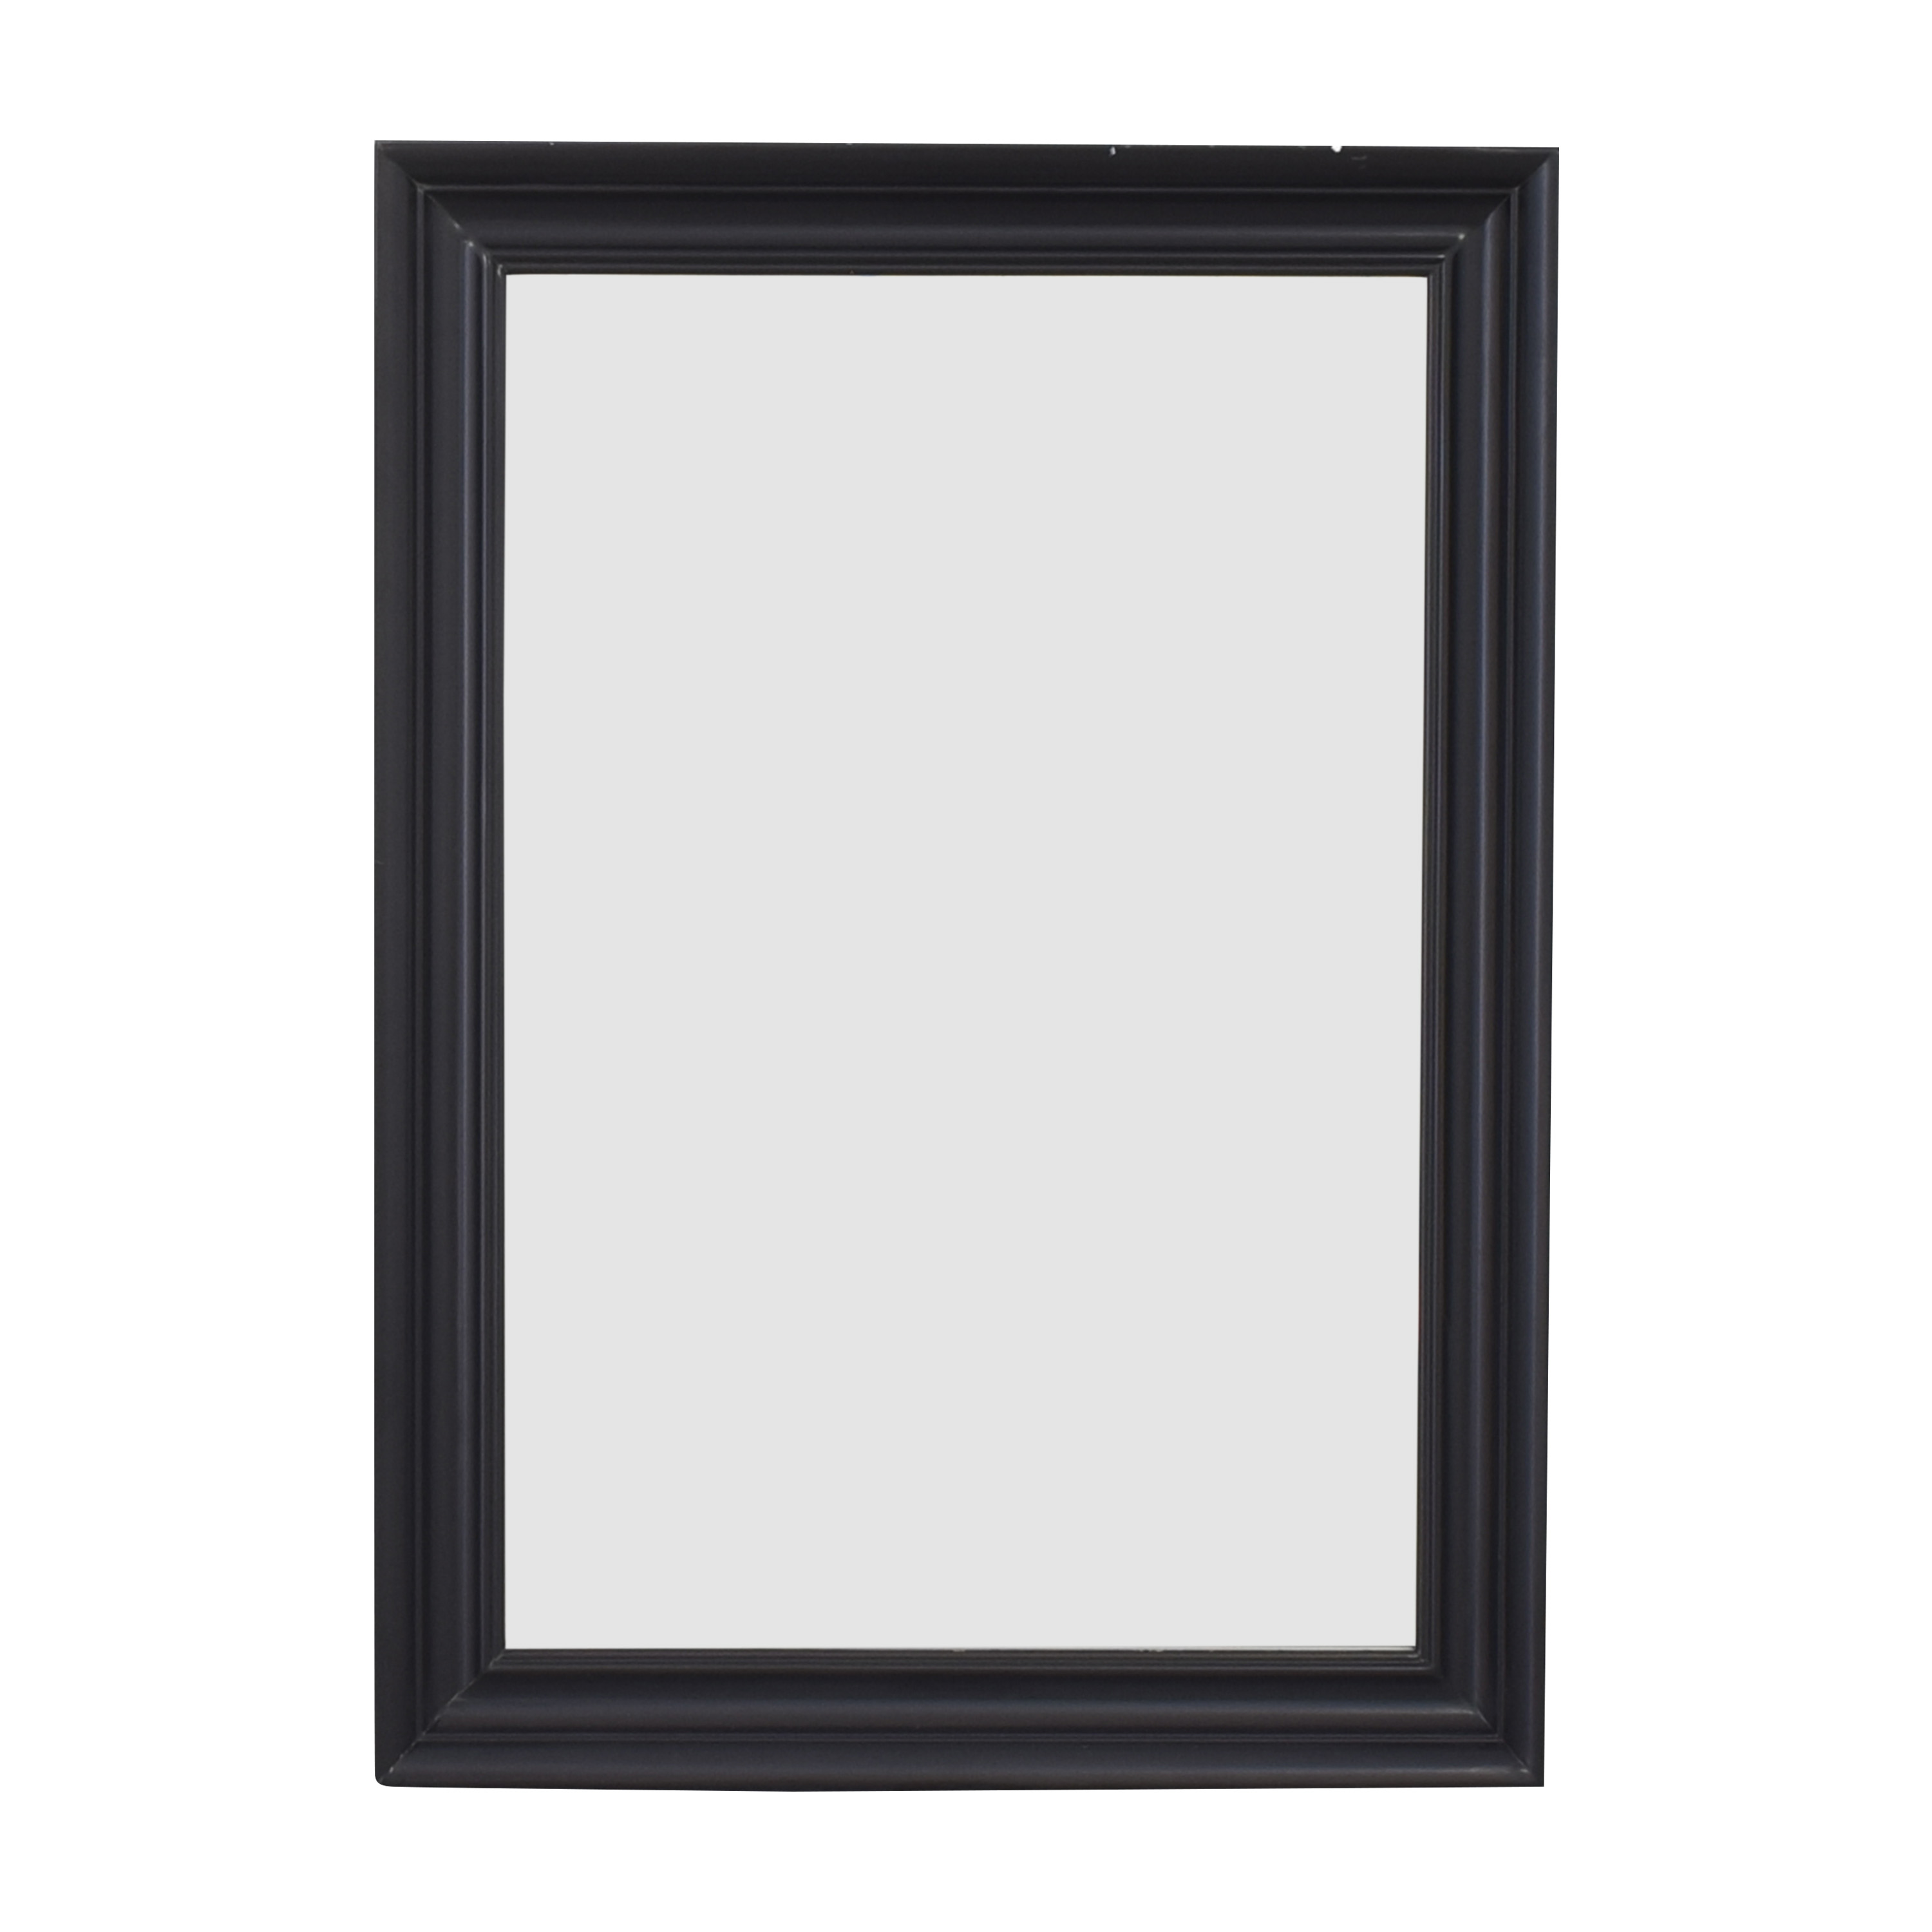 Thomasville Thomasville Framed Wall Mirror coupon